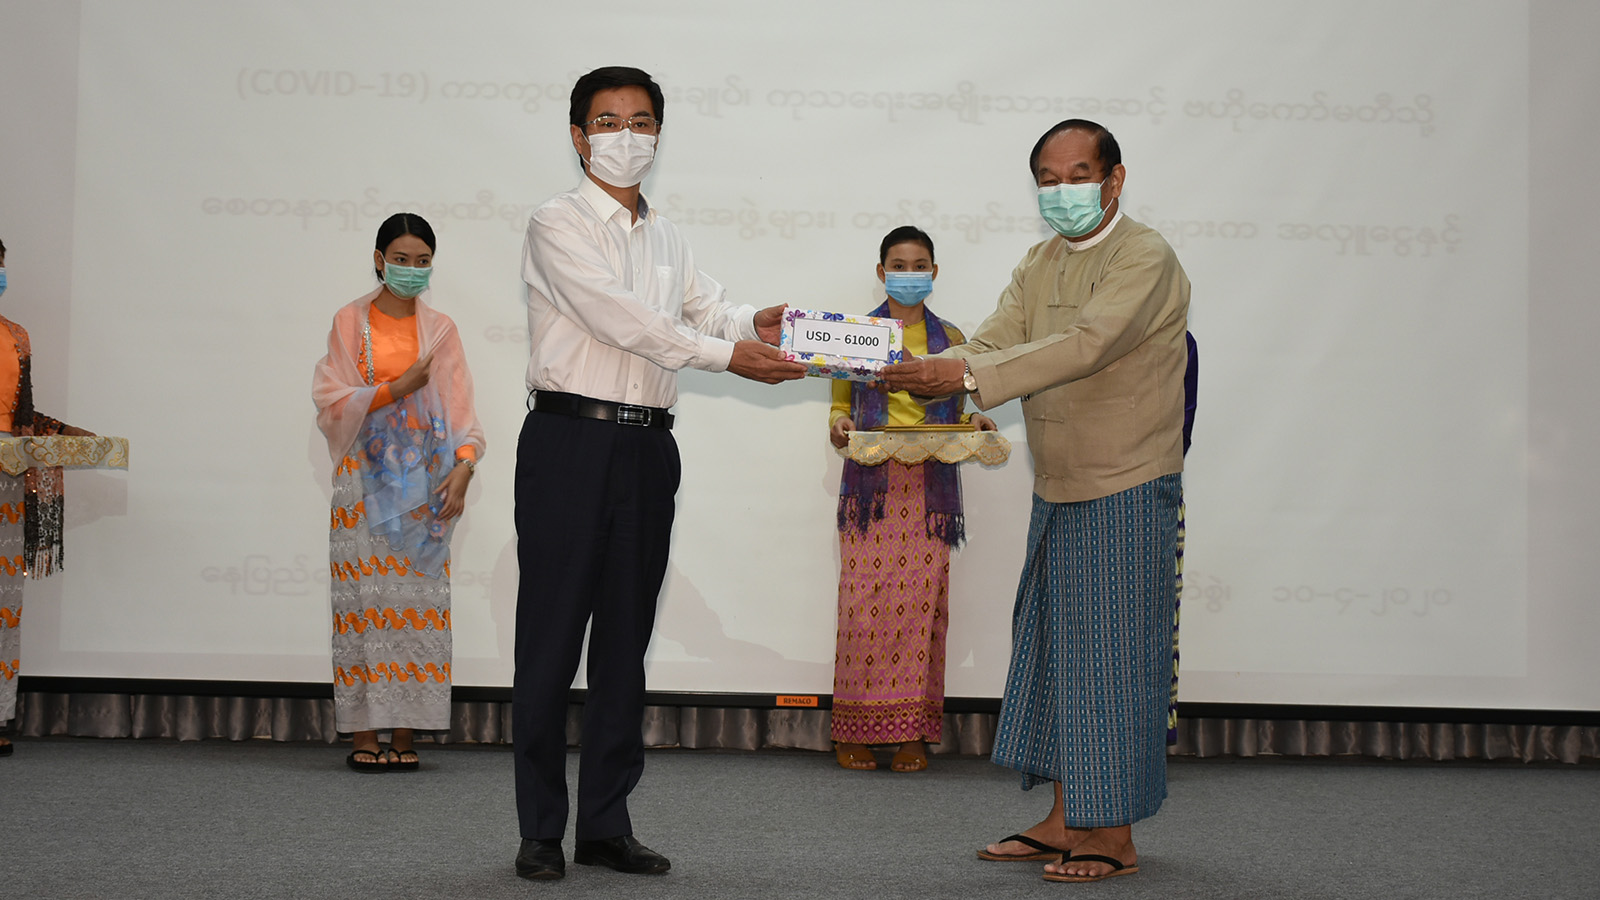 Union Minister Dr Myint Htwe accepts the donation for National-Level Central Committee on Prevention, Control and Treatment of Coronavirus Disease 2019 (COVID-19). Photo: MNA